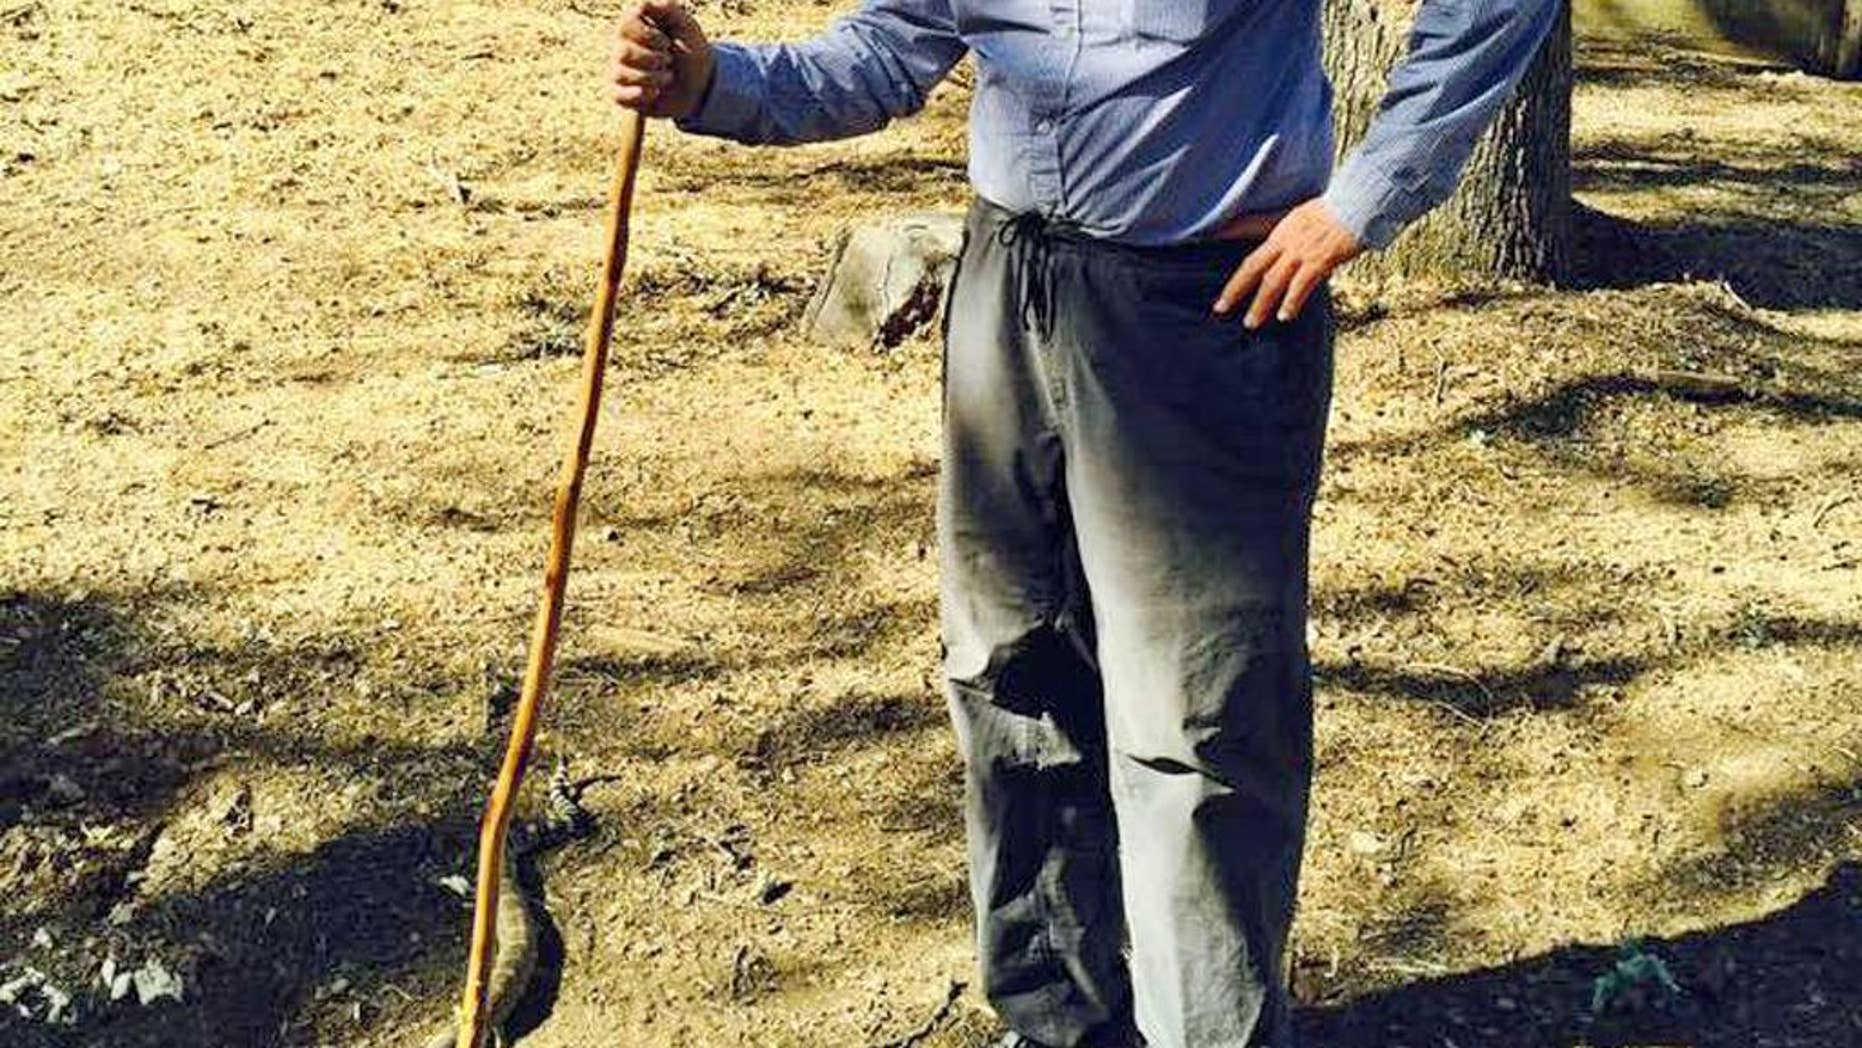 In this undated photo taken by California first lady Anne Gust and posted to Gov. Jerry Brown's Twitter account on Saturday, April 18, 2015, California Gov. Jerry Brown poses with a rattlesnake, held with a snake stick, on land Brown's family owns in rural Colusa county, near Williams, Calif.  (Anne Gust via AP)